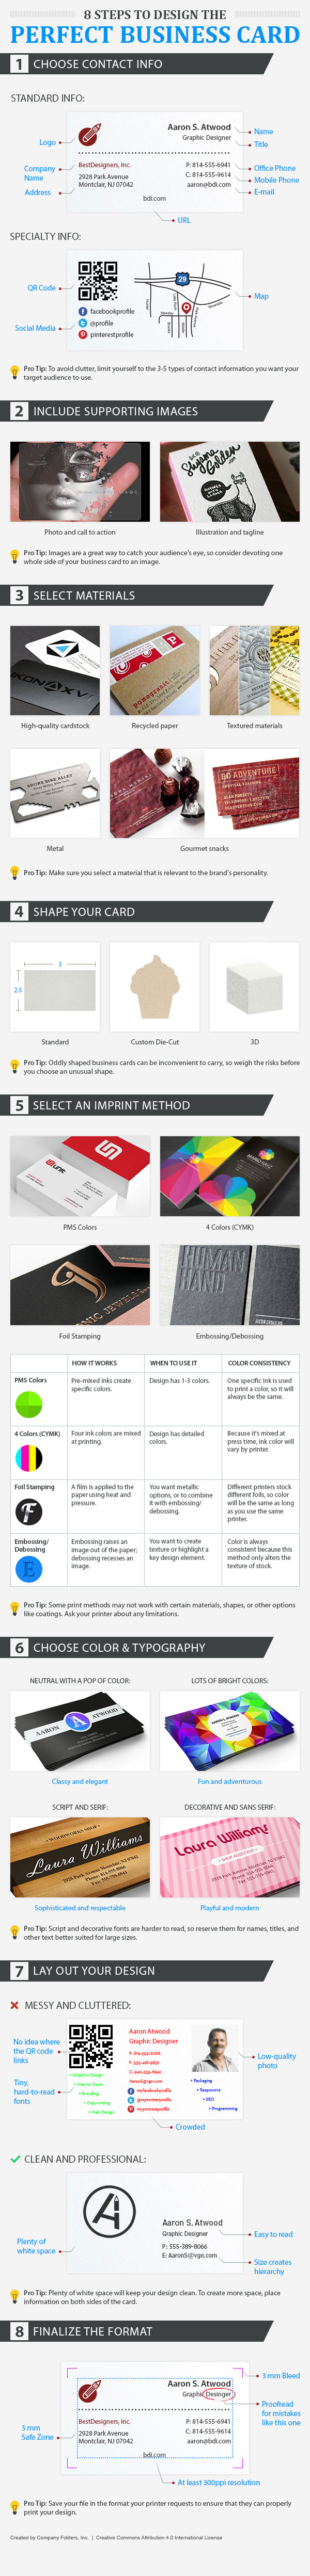 business-card-design-tips